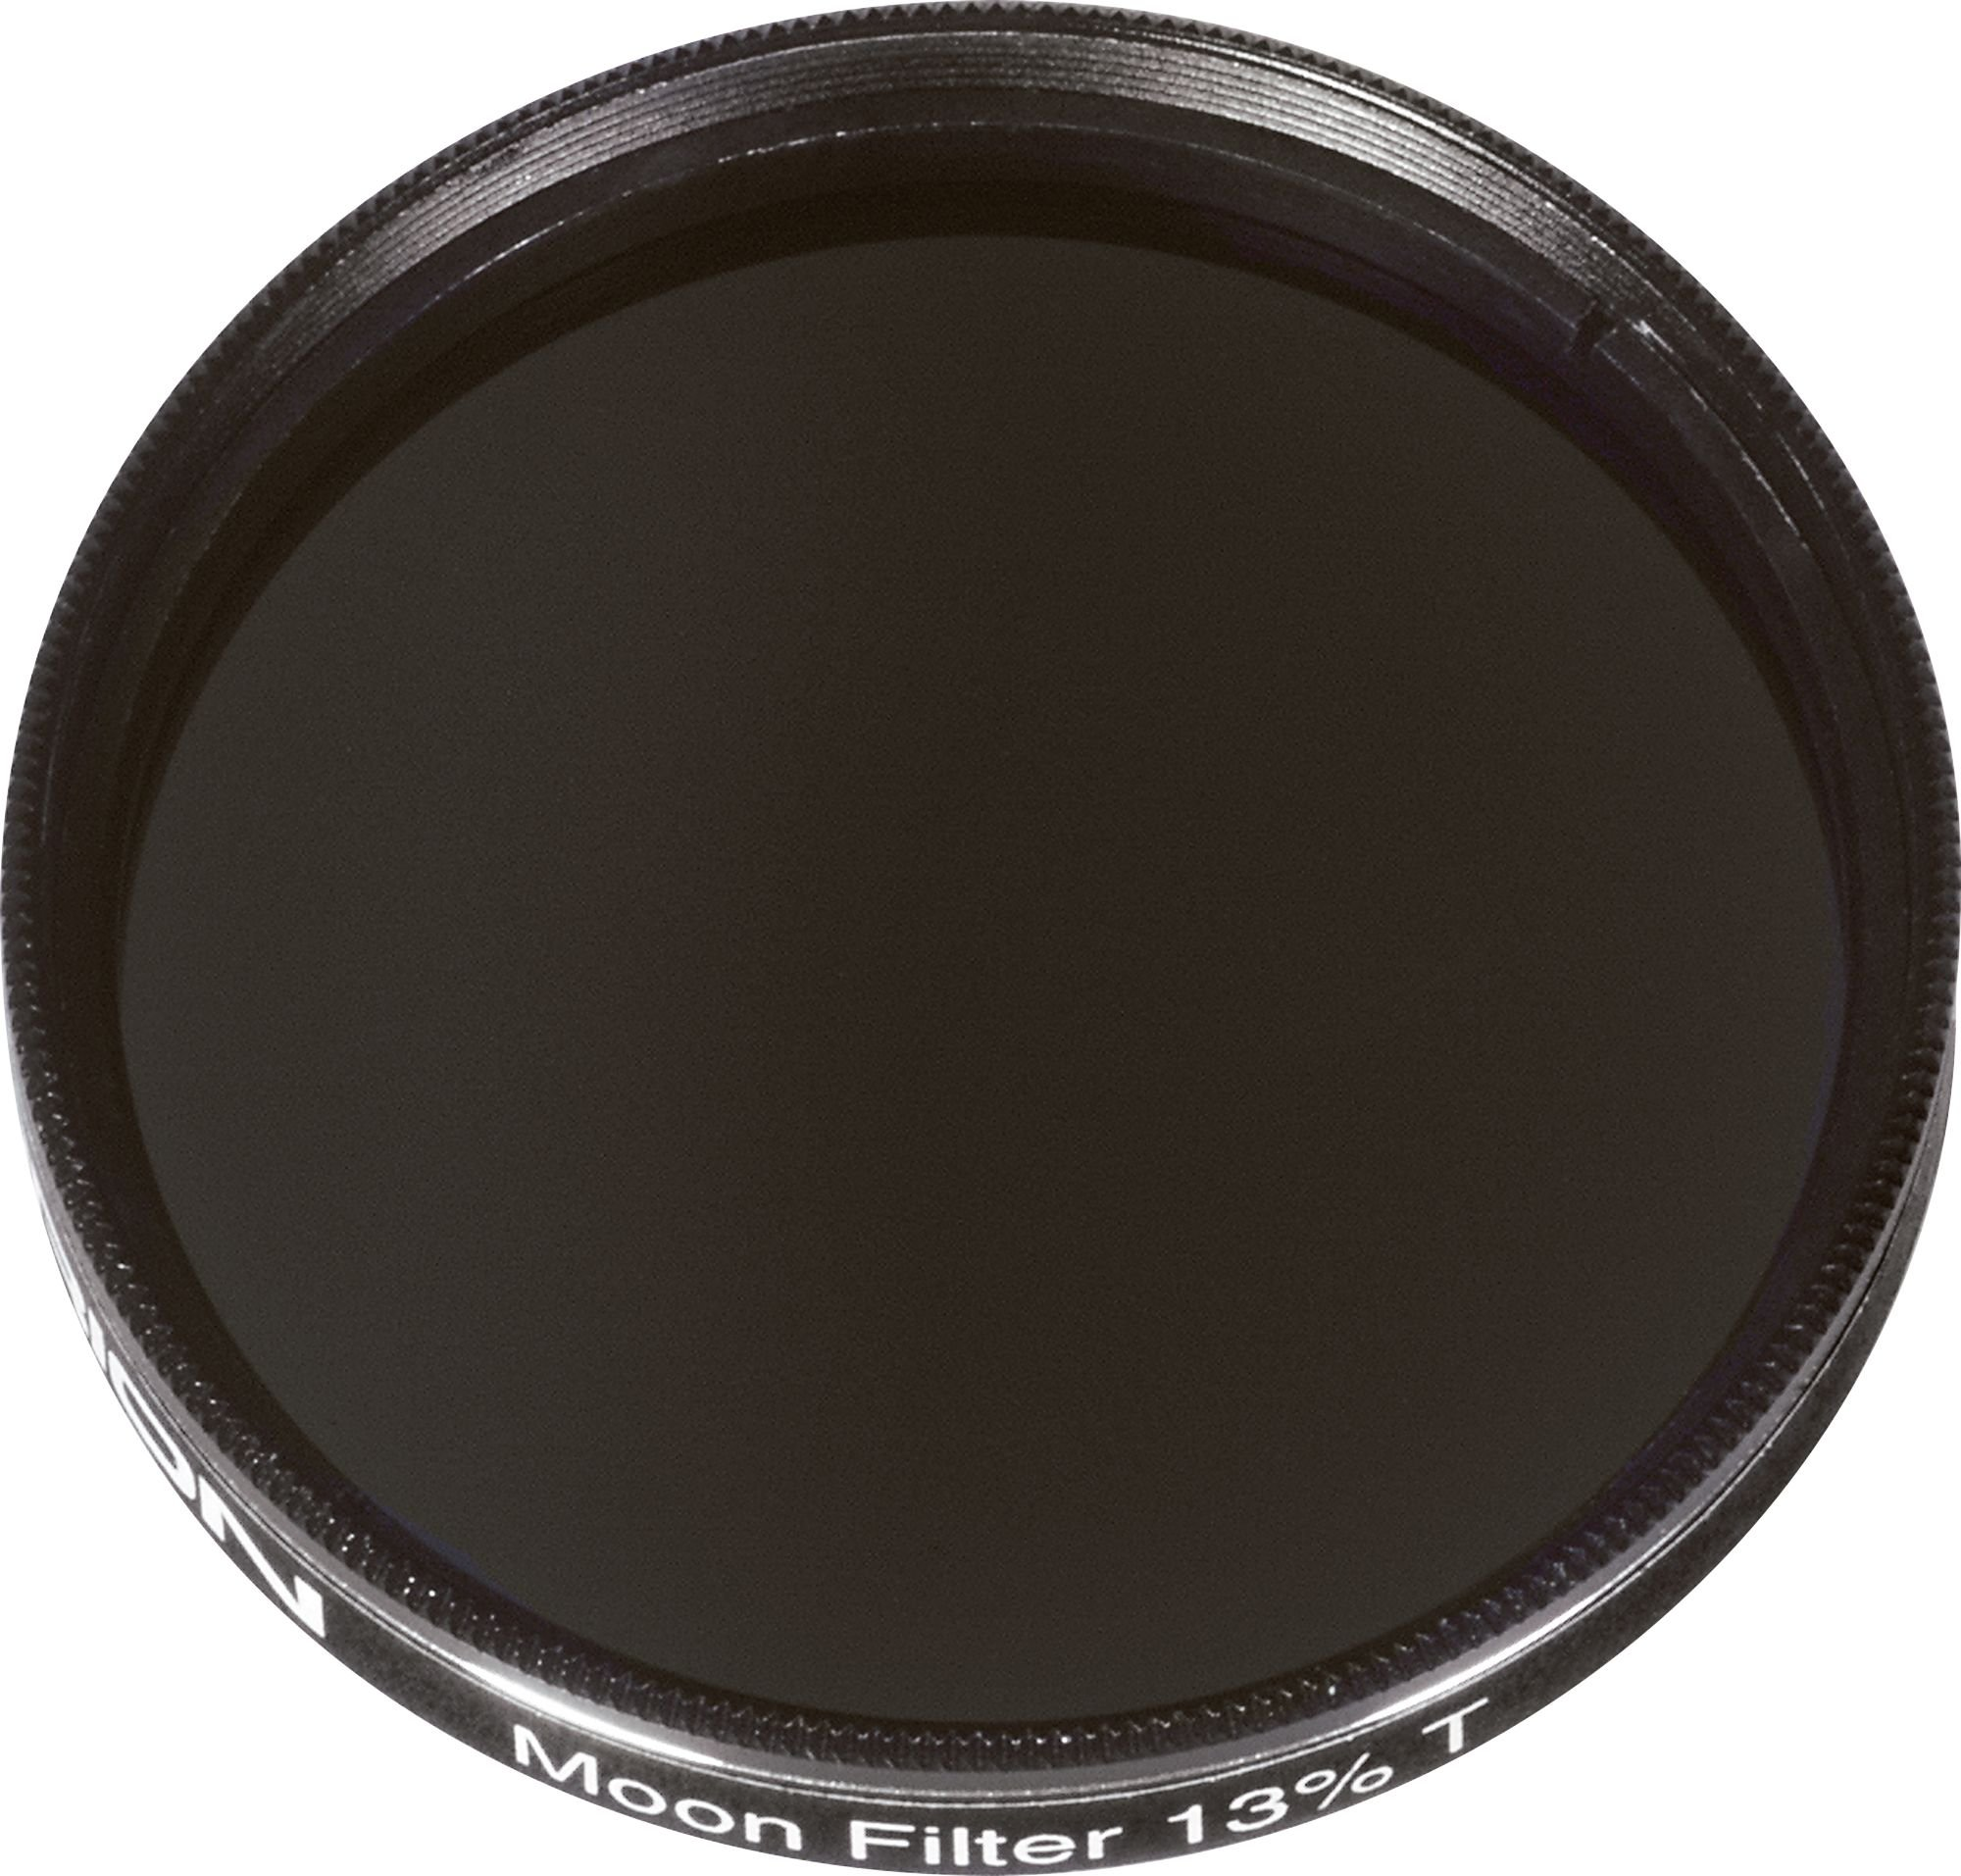 Orion 05594 2-Inch 13 Percent Transmission Moon Filter (Black) by Orion